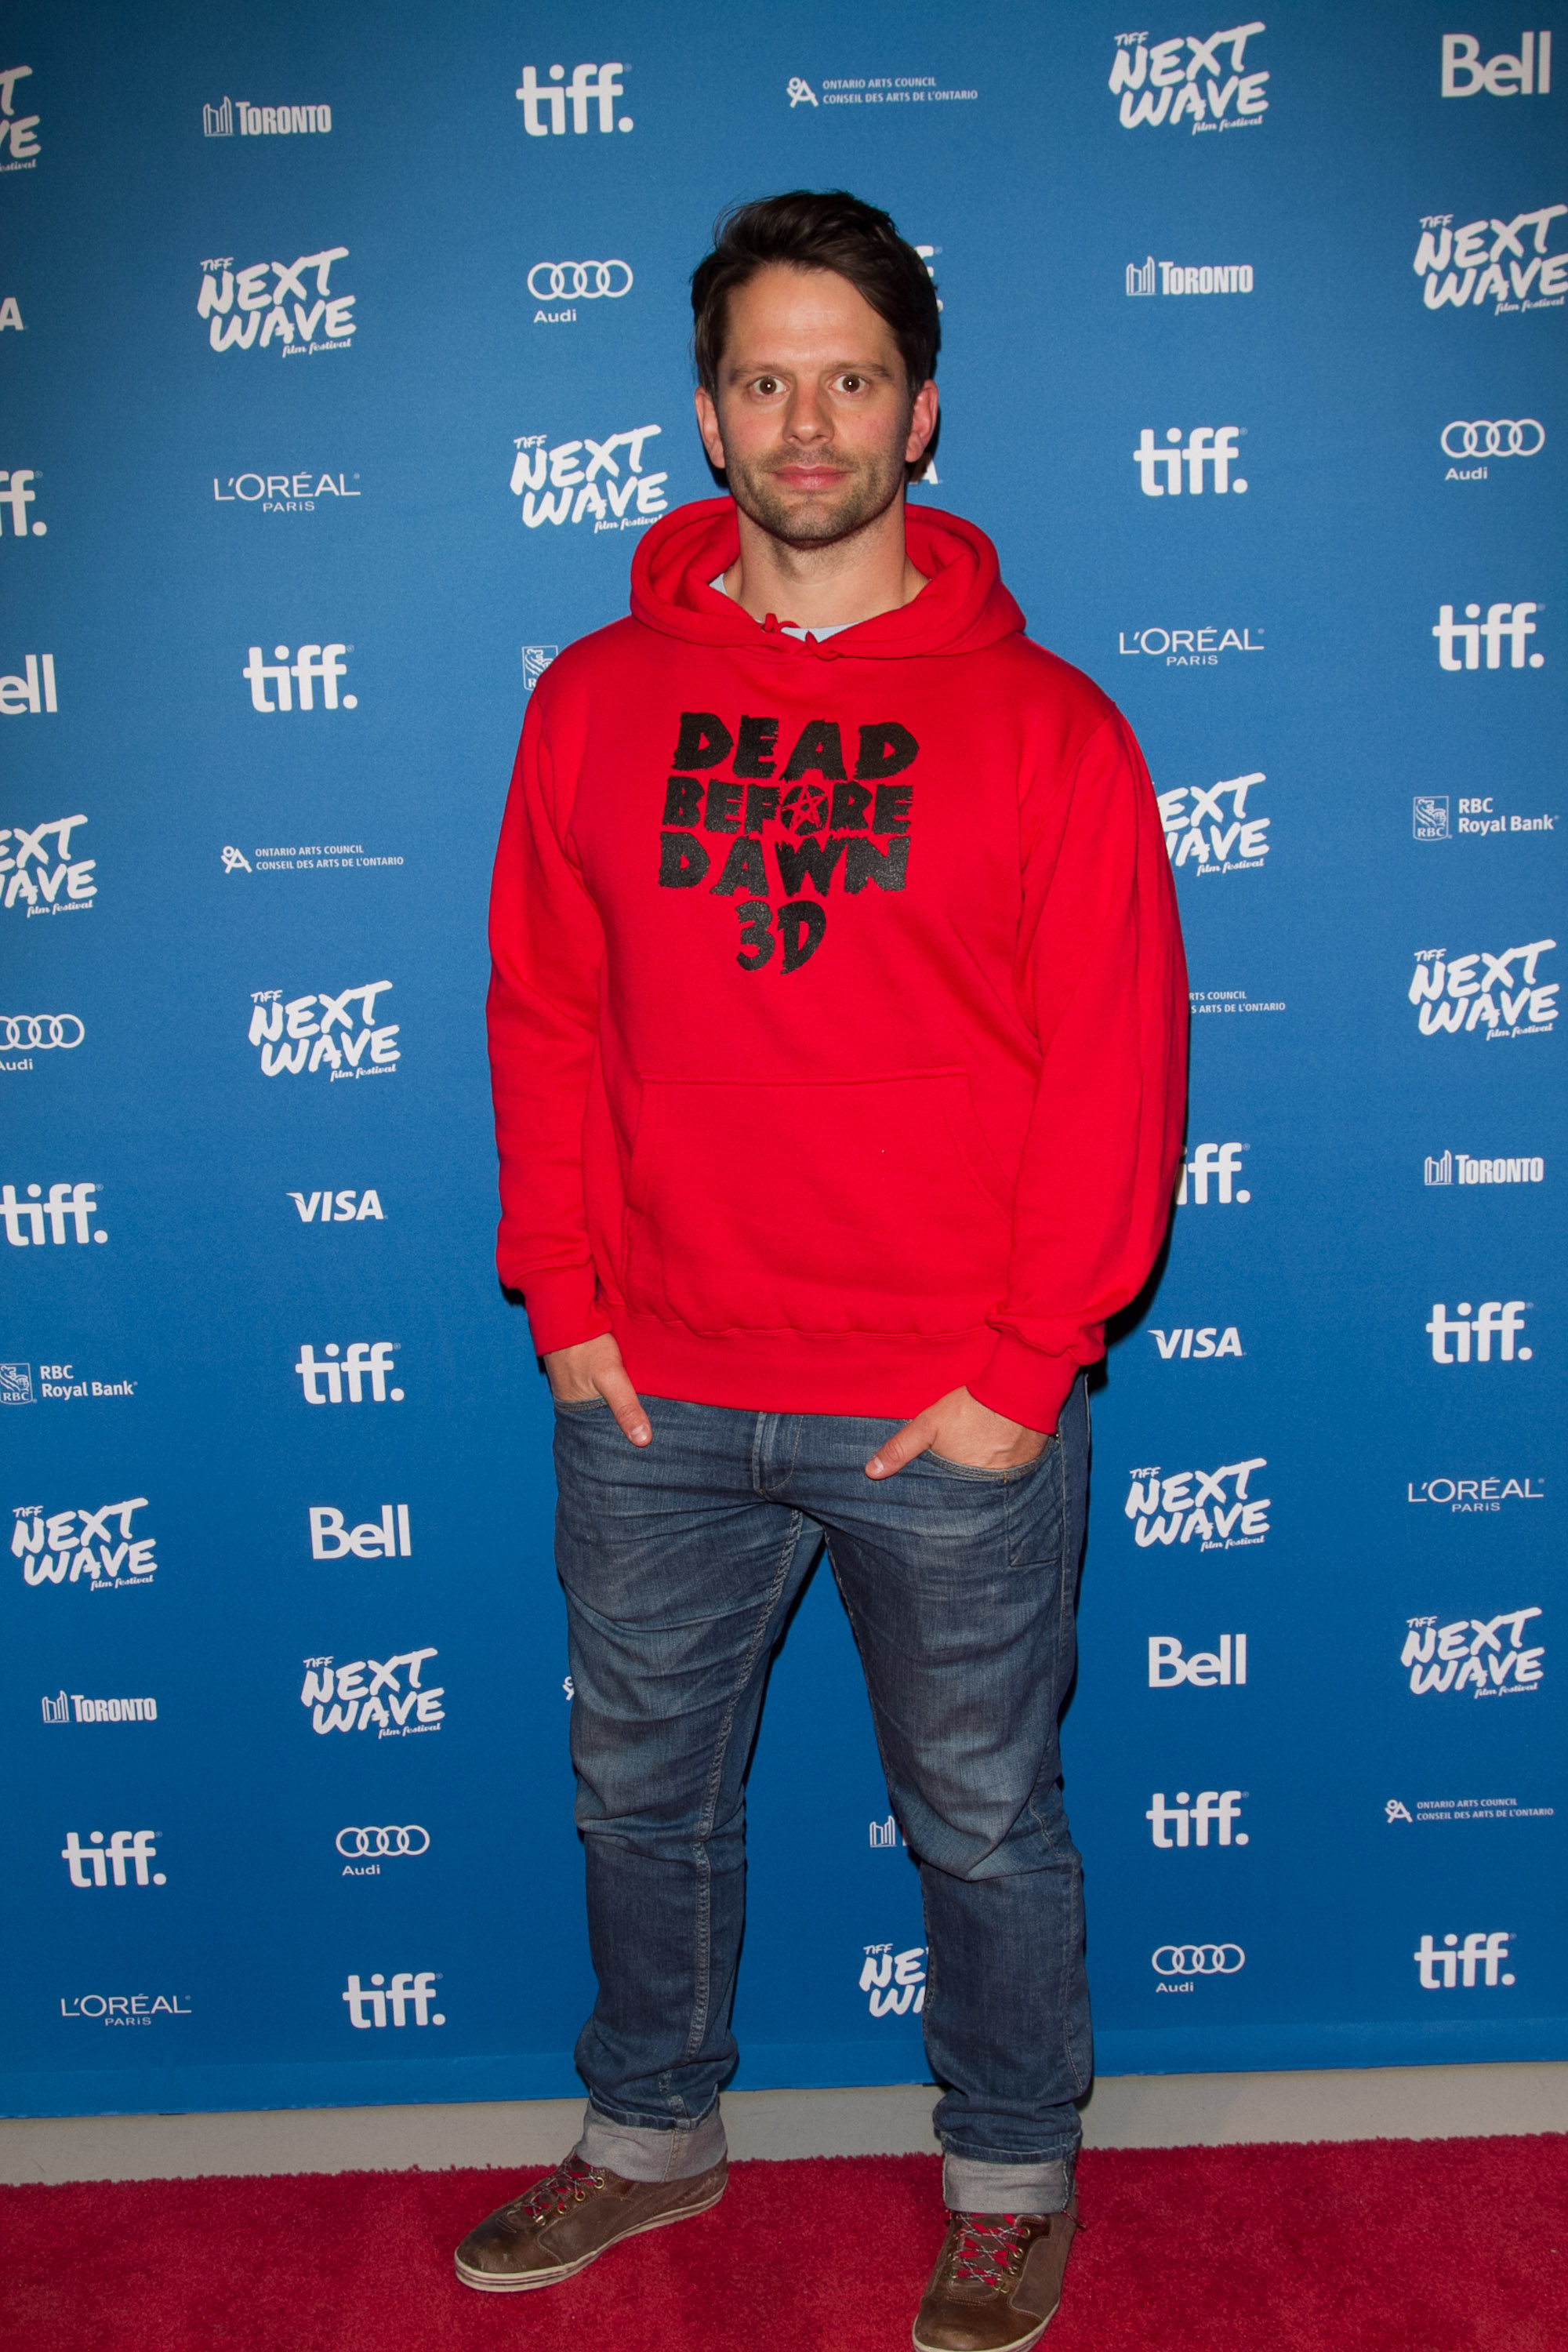 Actor/Writer Tim Doiron arrives at the TIFF Next Wave Film Festival in Toronto for the North American Premiere of Dead Before Dawn 3D.  Photo by: Sarjoun Faour, WireImage/Getty for TIFF